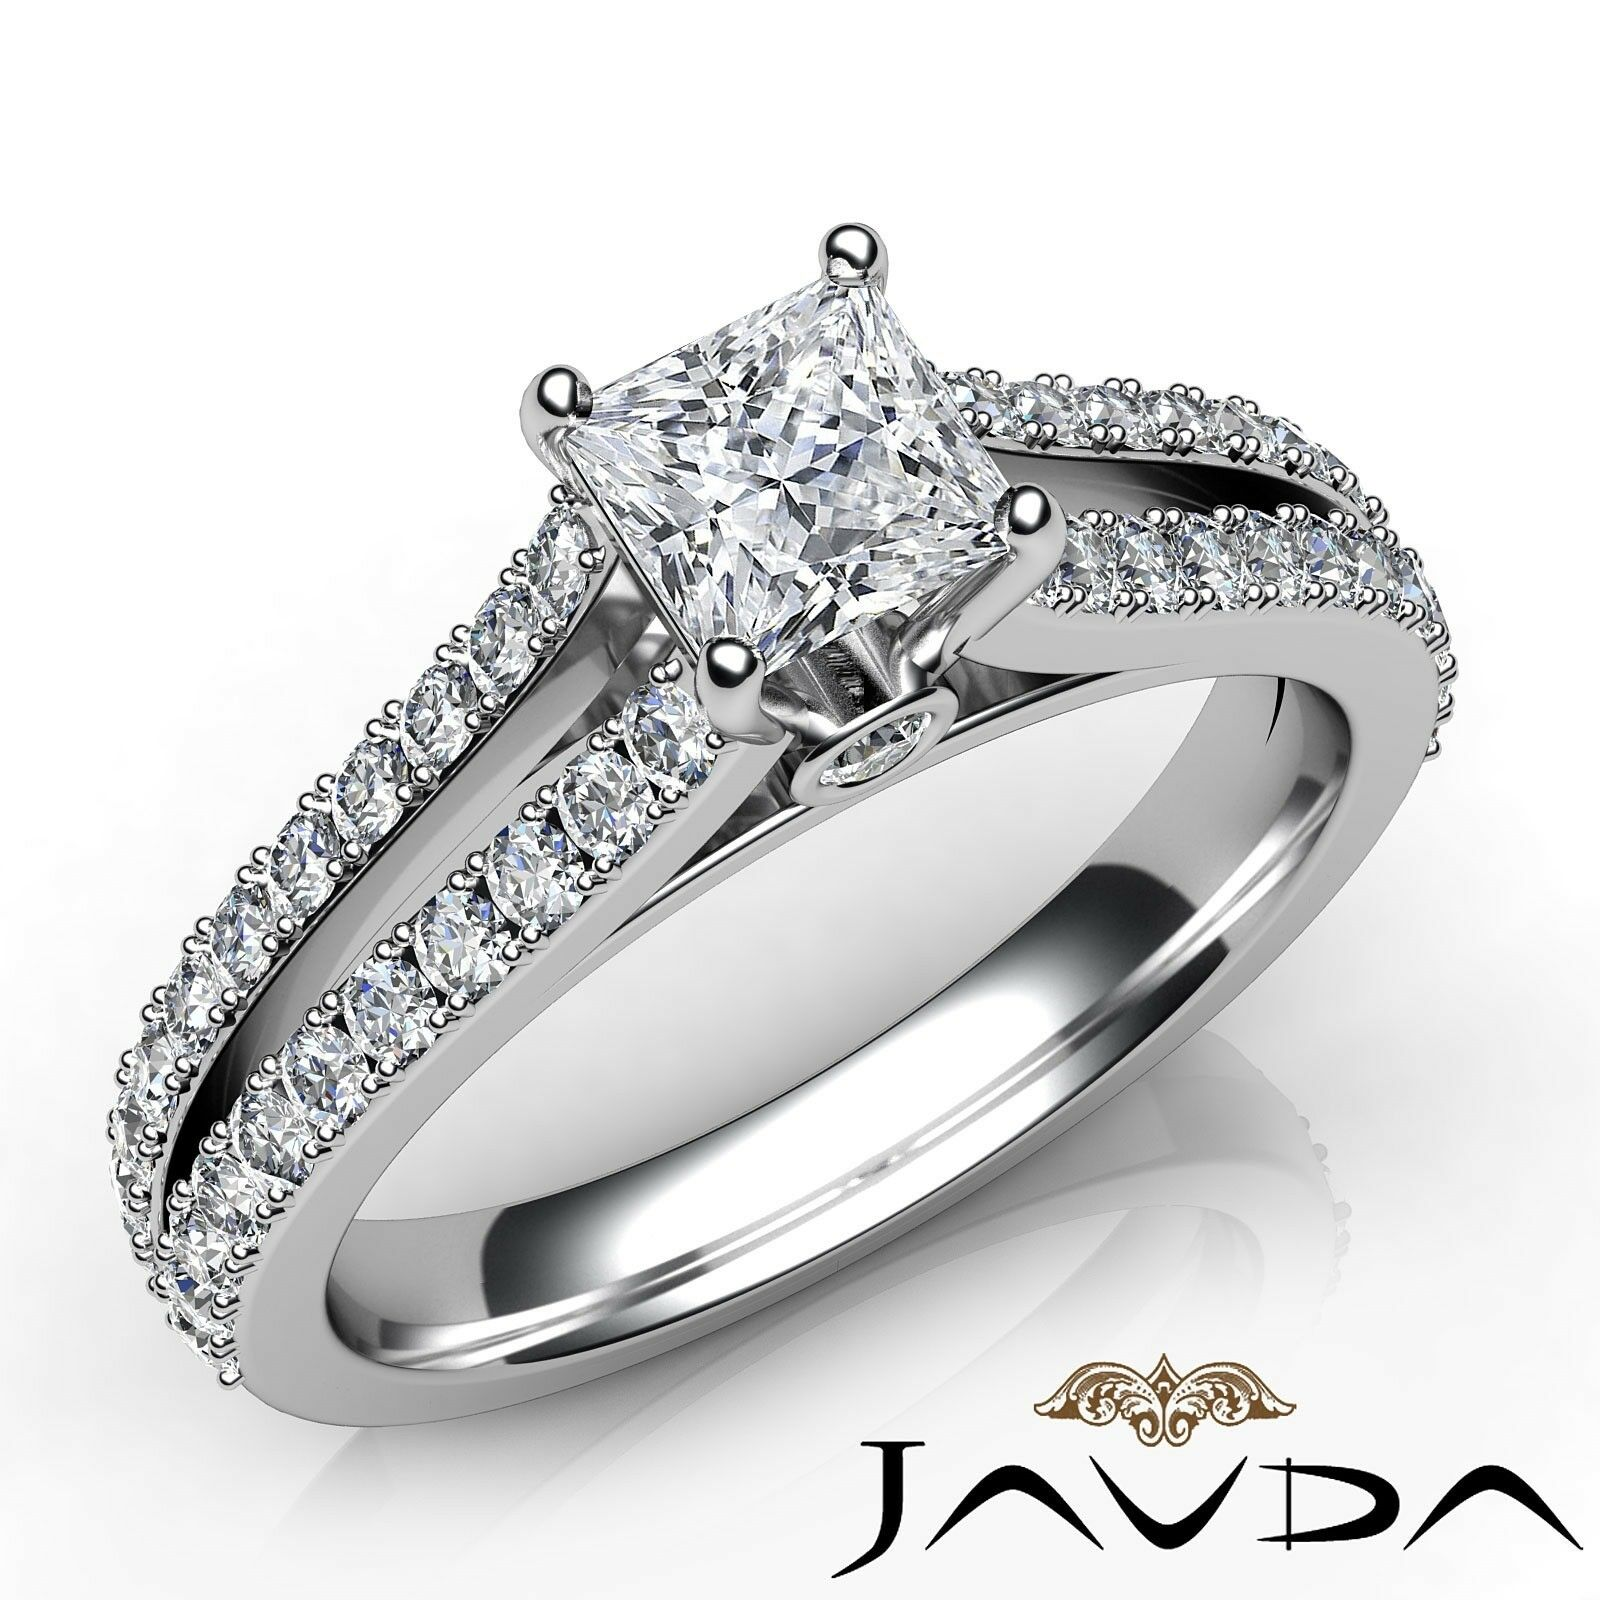 1.15ctw Double Prong Princess Diamond Engagement Ring GIA H-VVS1 White Gold New